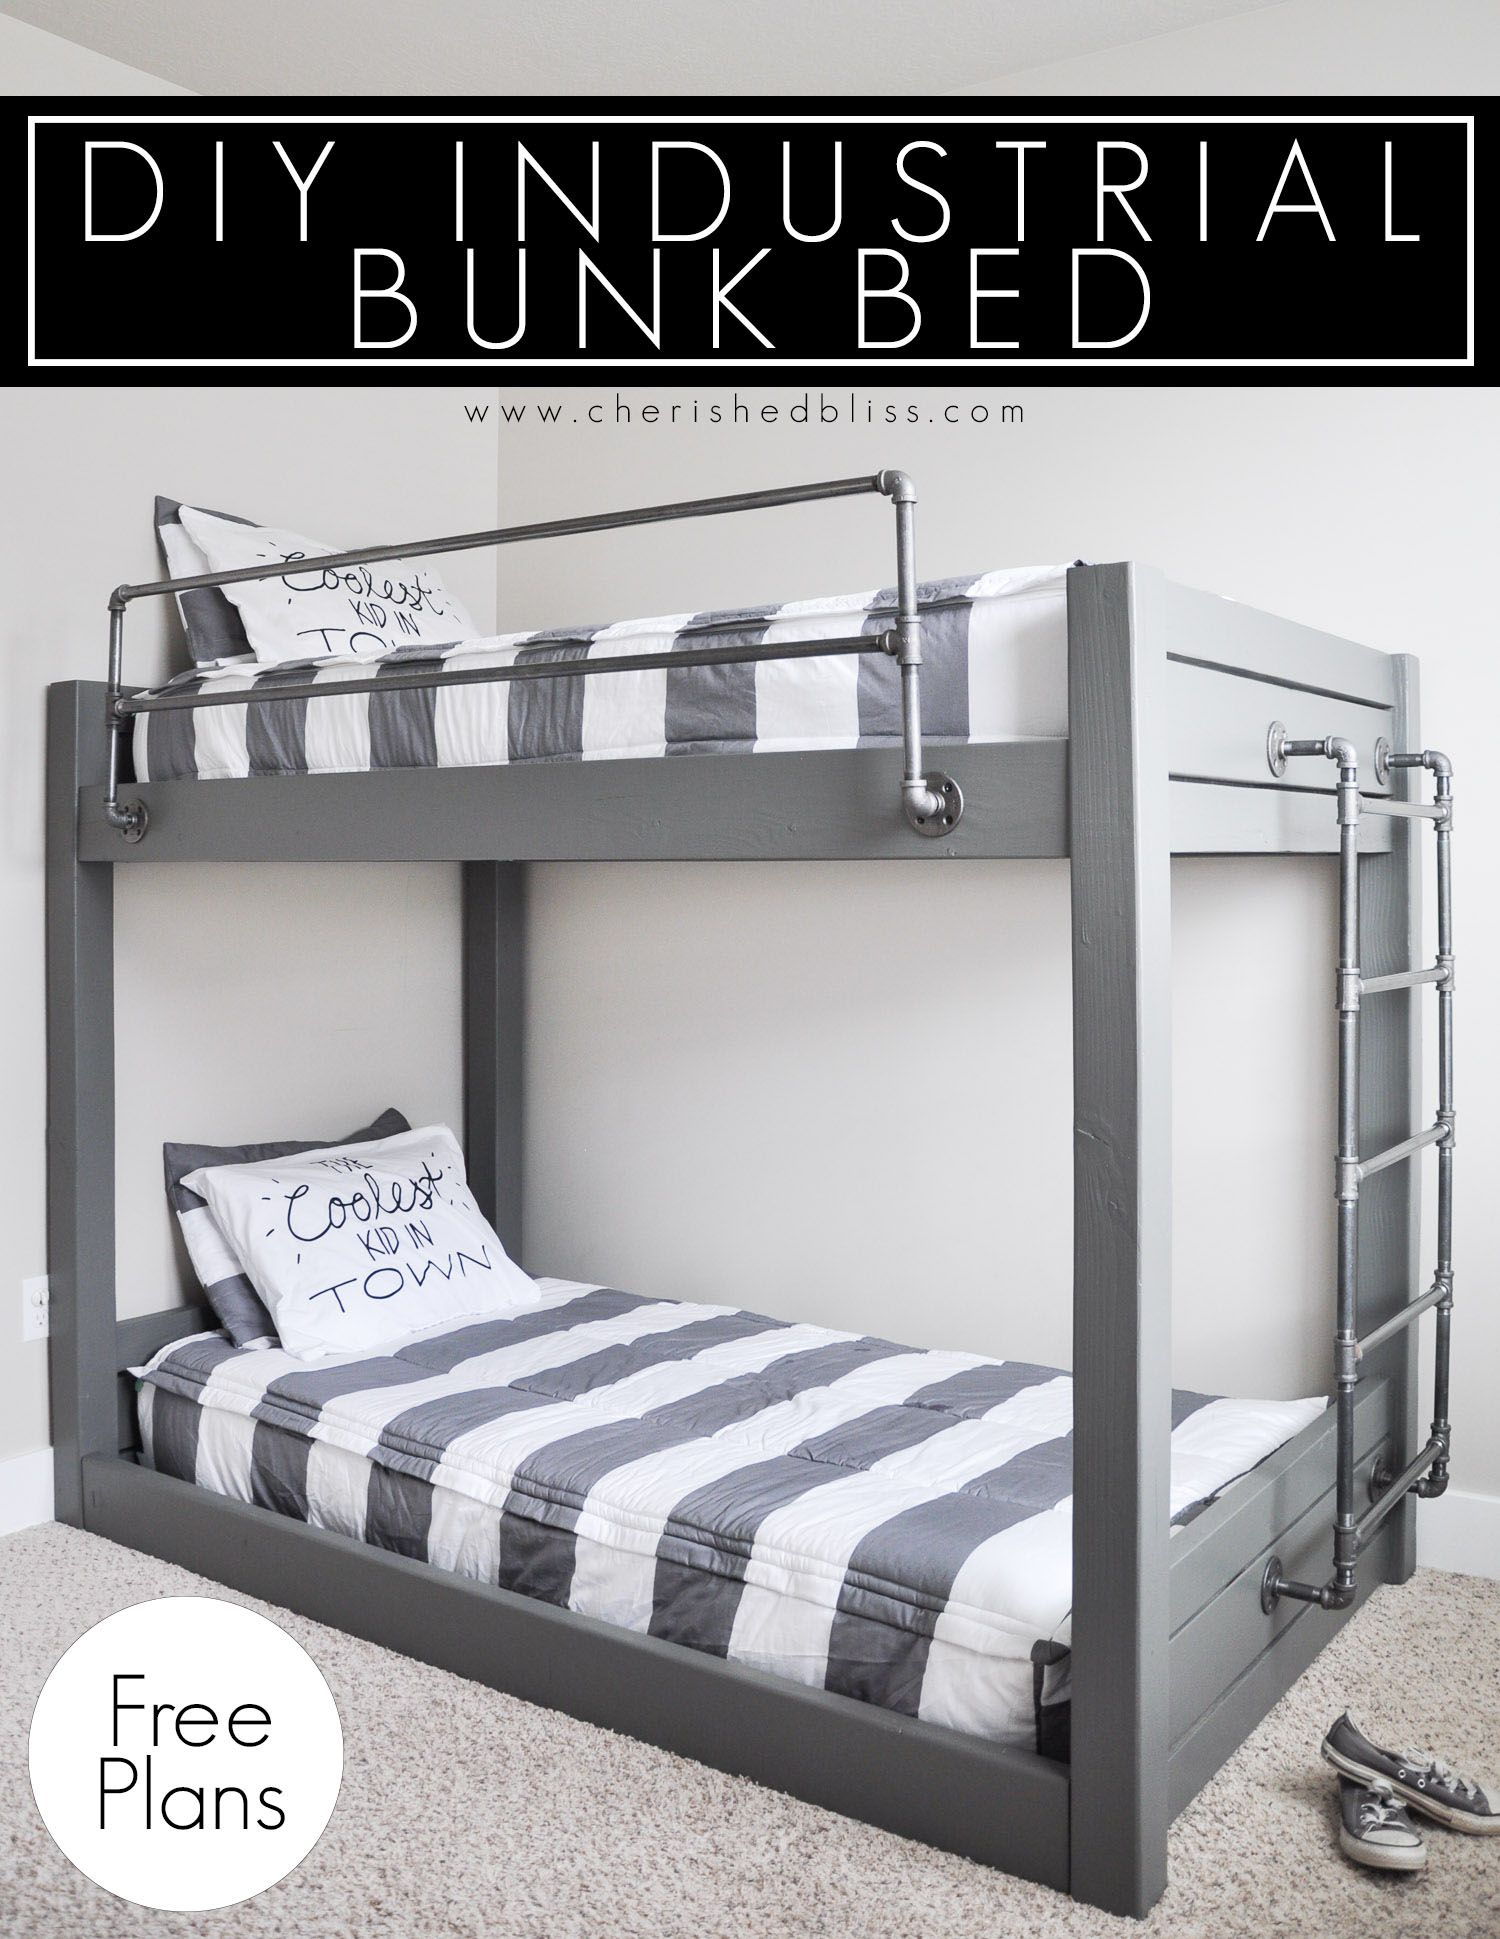 Get The Free Plans For This Diy Bunk Bed